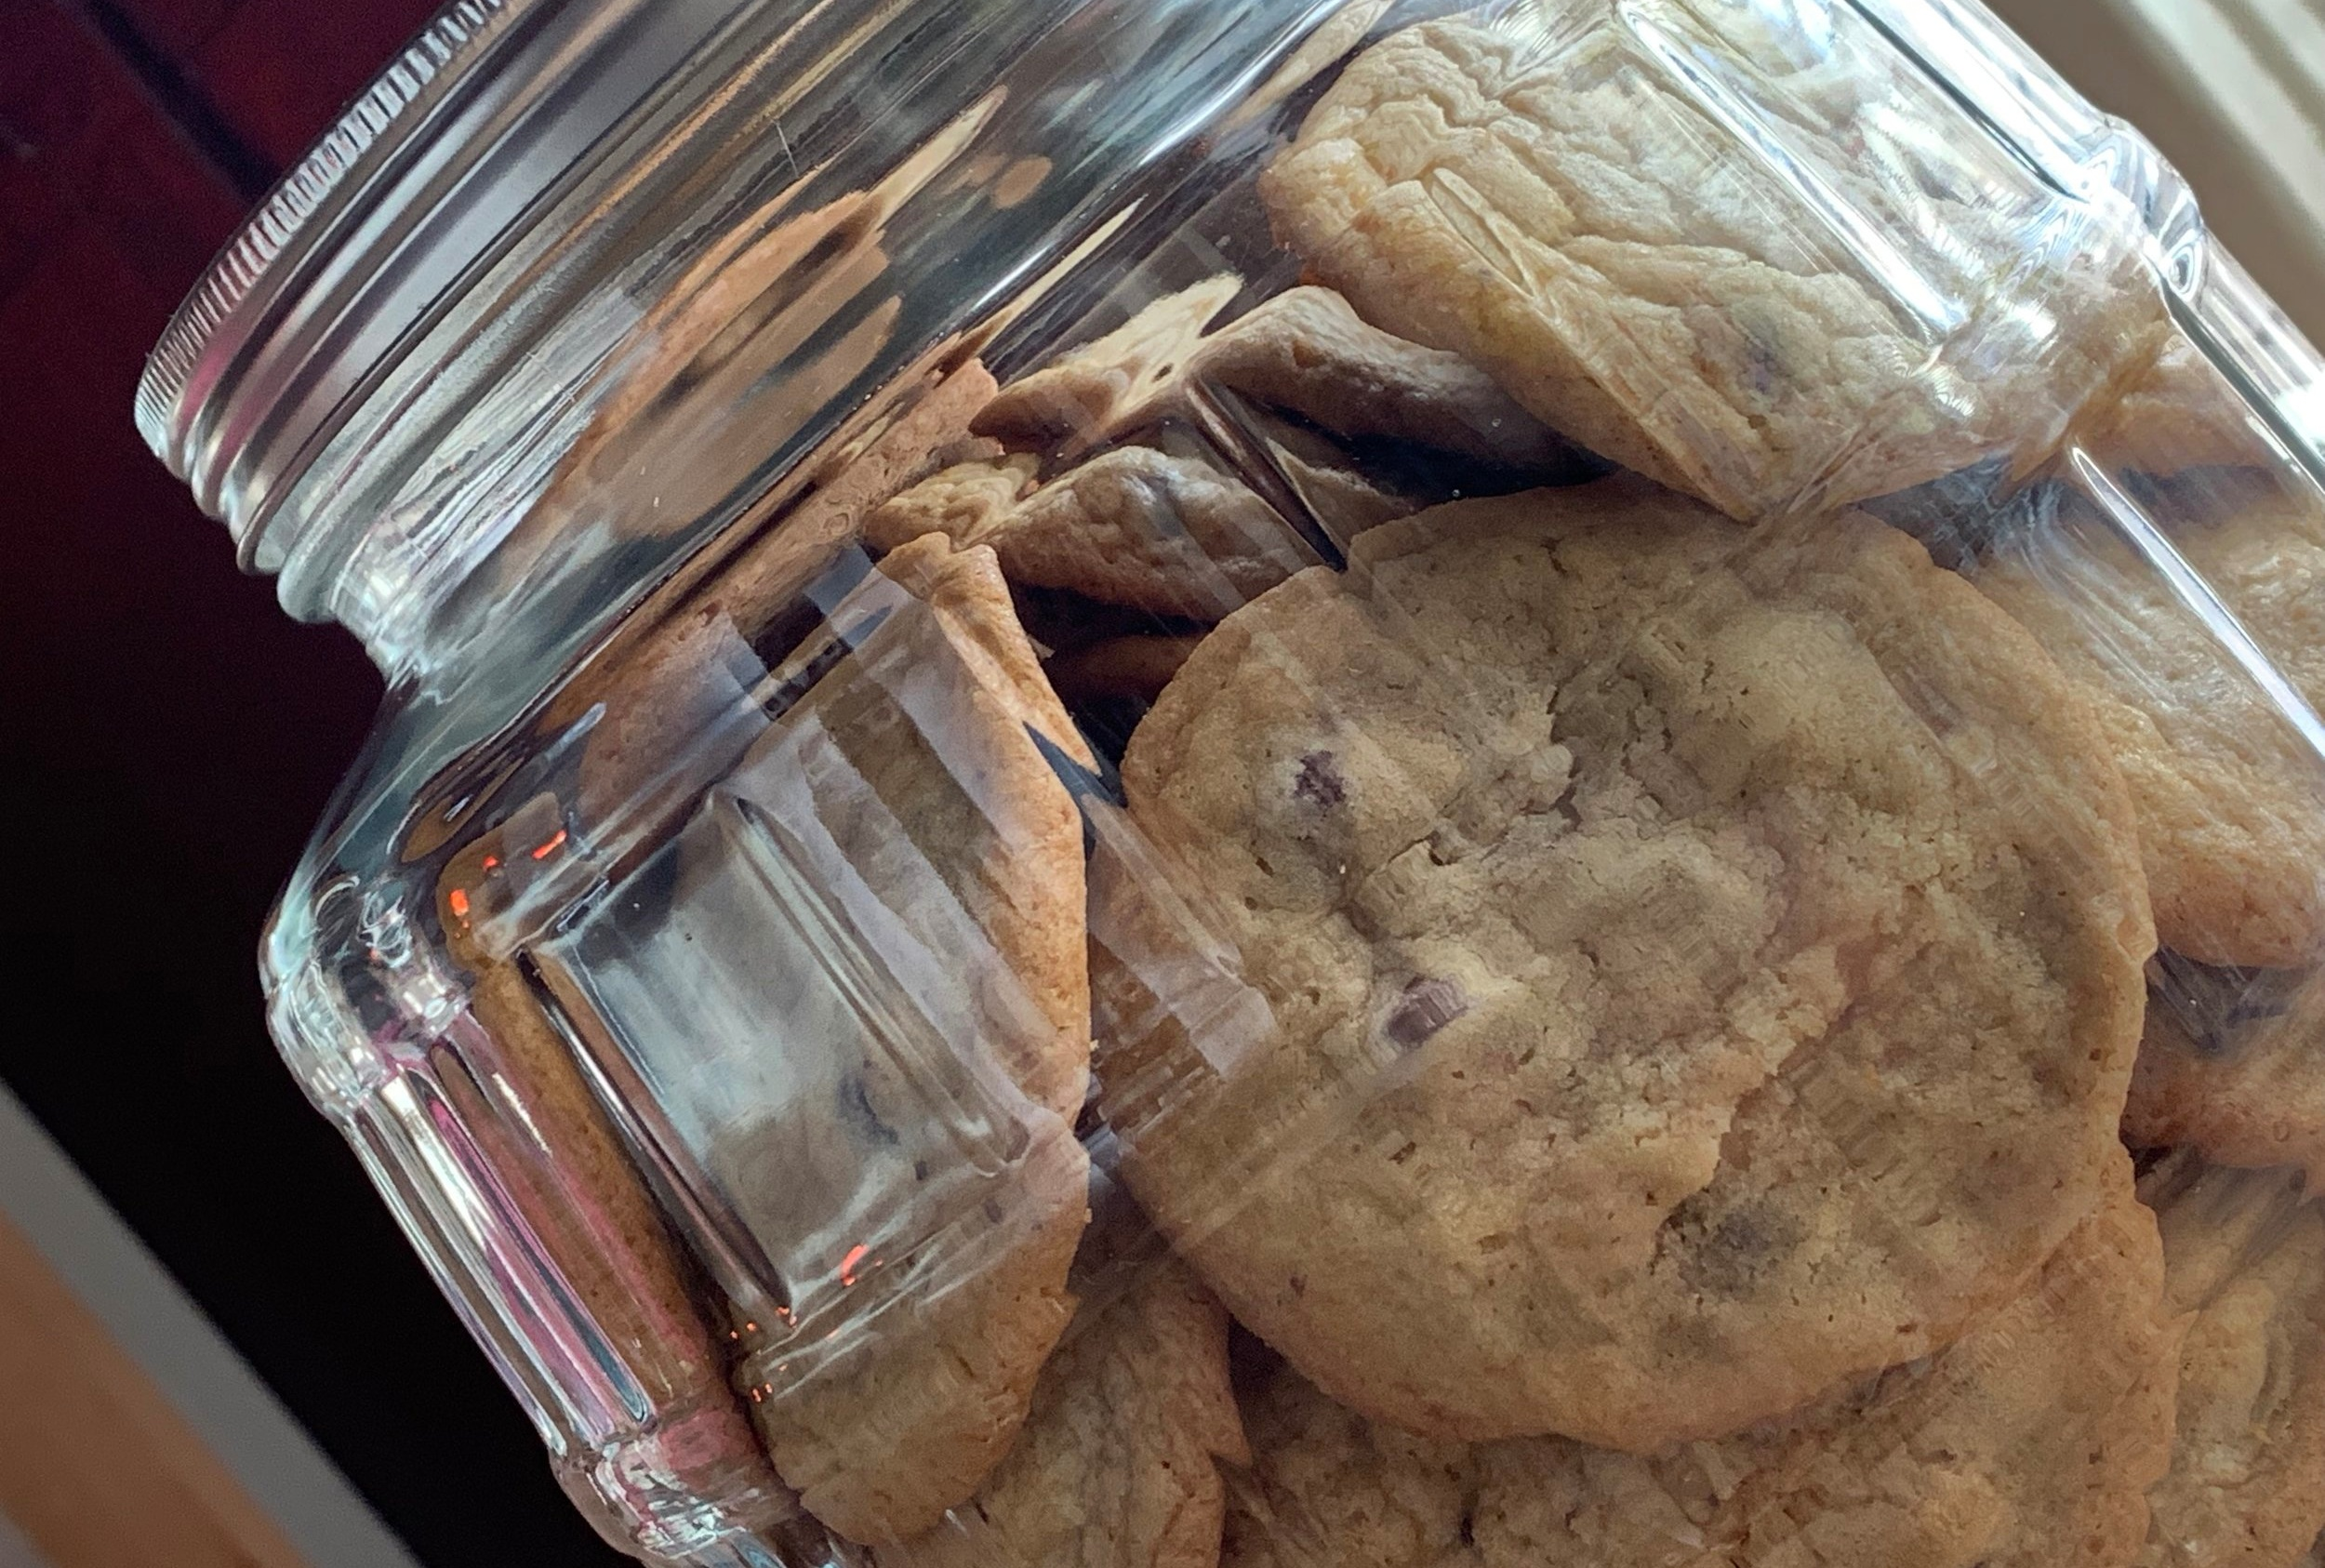 Delicious home baked chocolate chip cookies